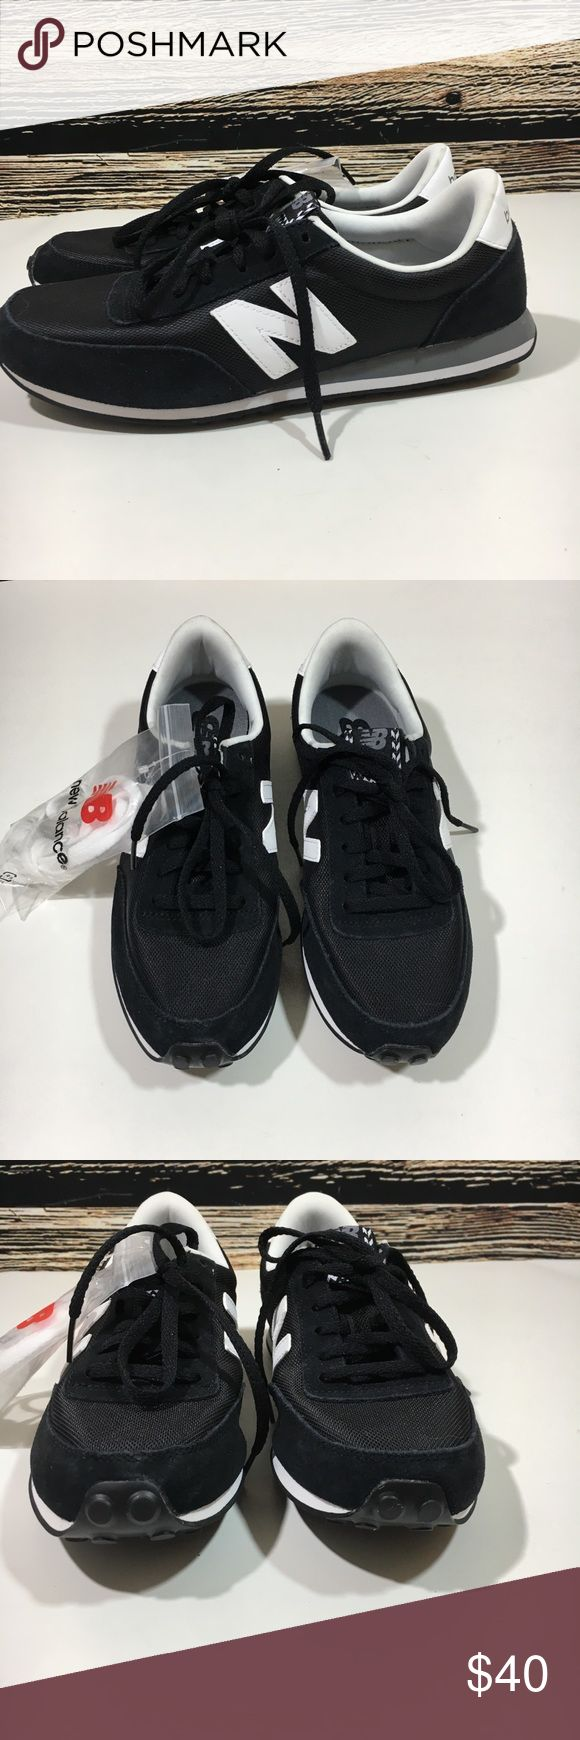 New balance running shoes black white wl410vic 8 New Balance style wl410vic black/white running shoes with black laces, extra white pair of laces are included. Women's size 8 US. New without box New Balance Shoes Sneakers